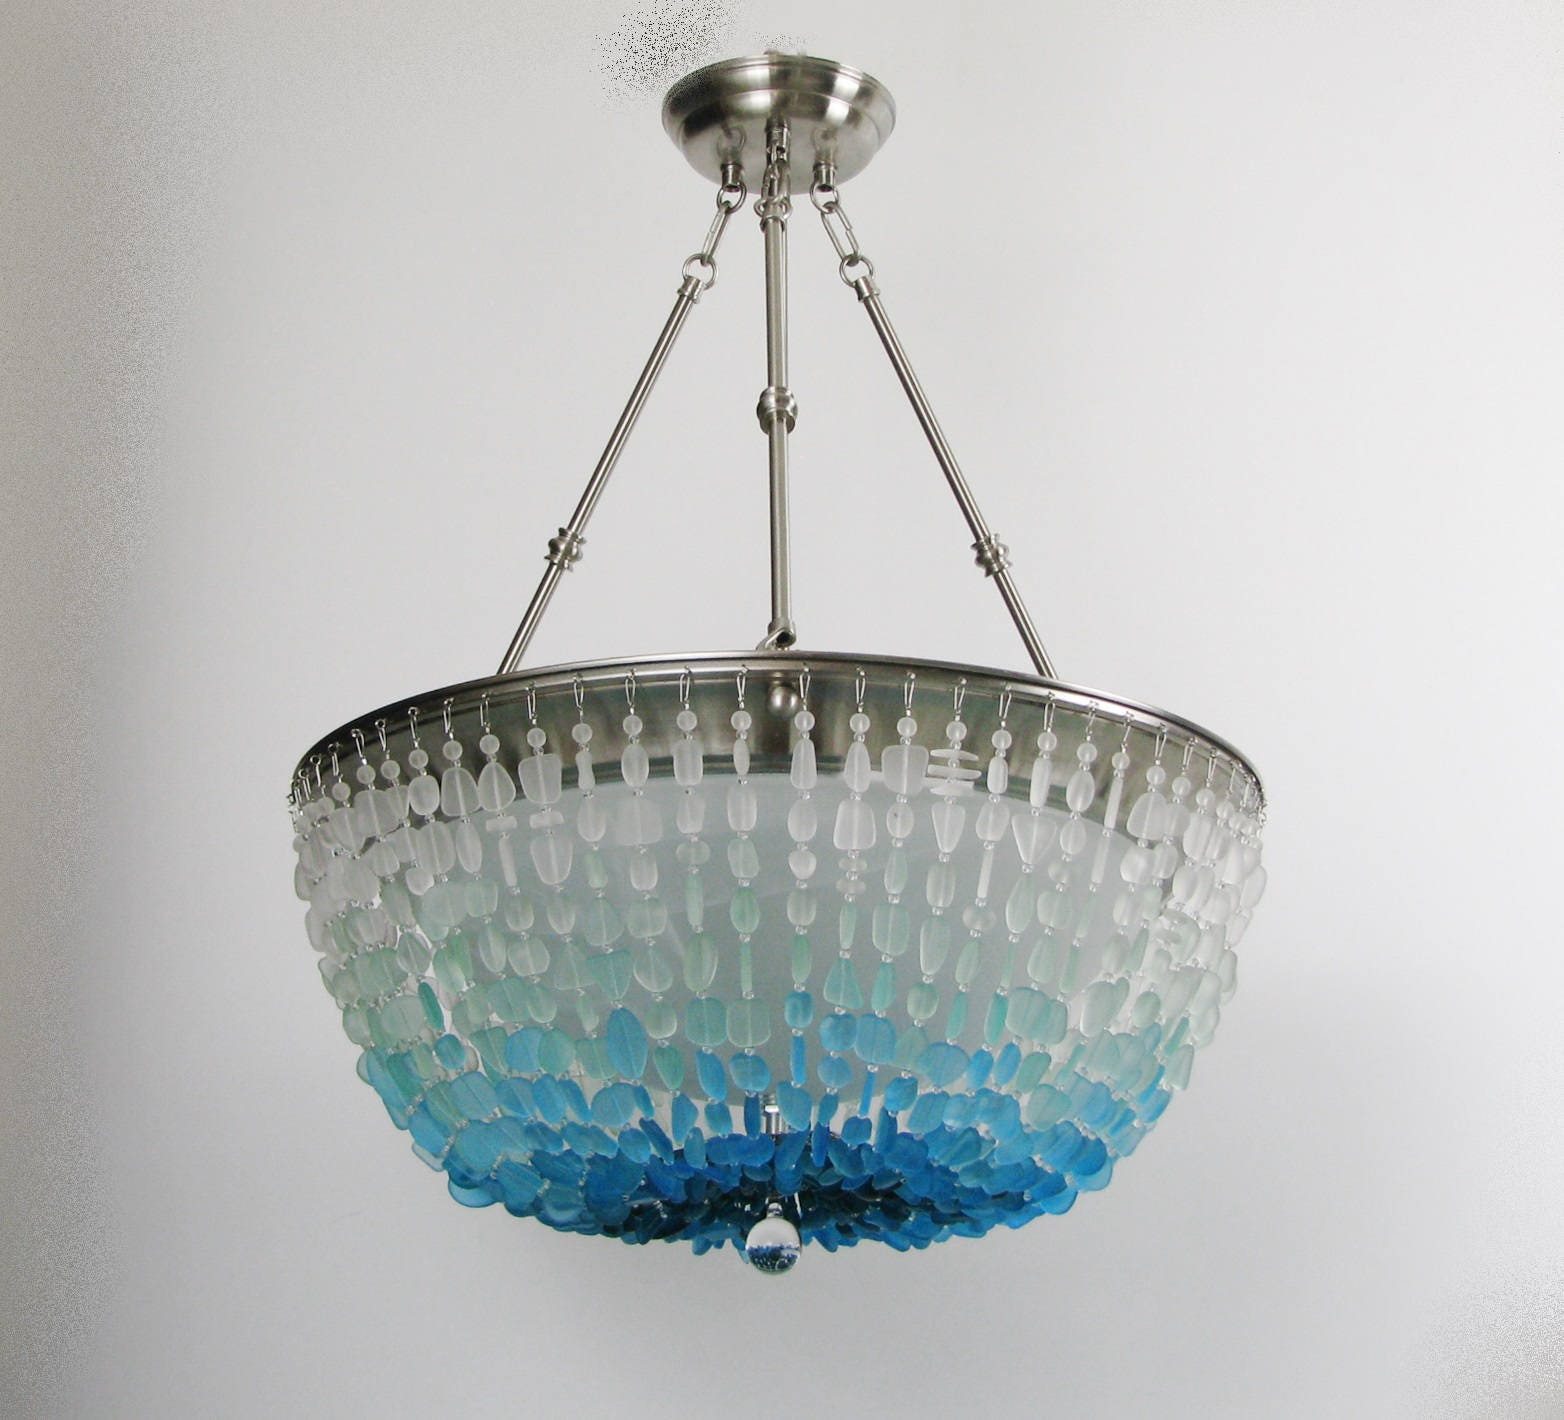 chandeliers wood french inspirational spaces chandelier glass small recycled stairwell light with pendant round retro for lights